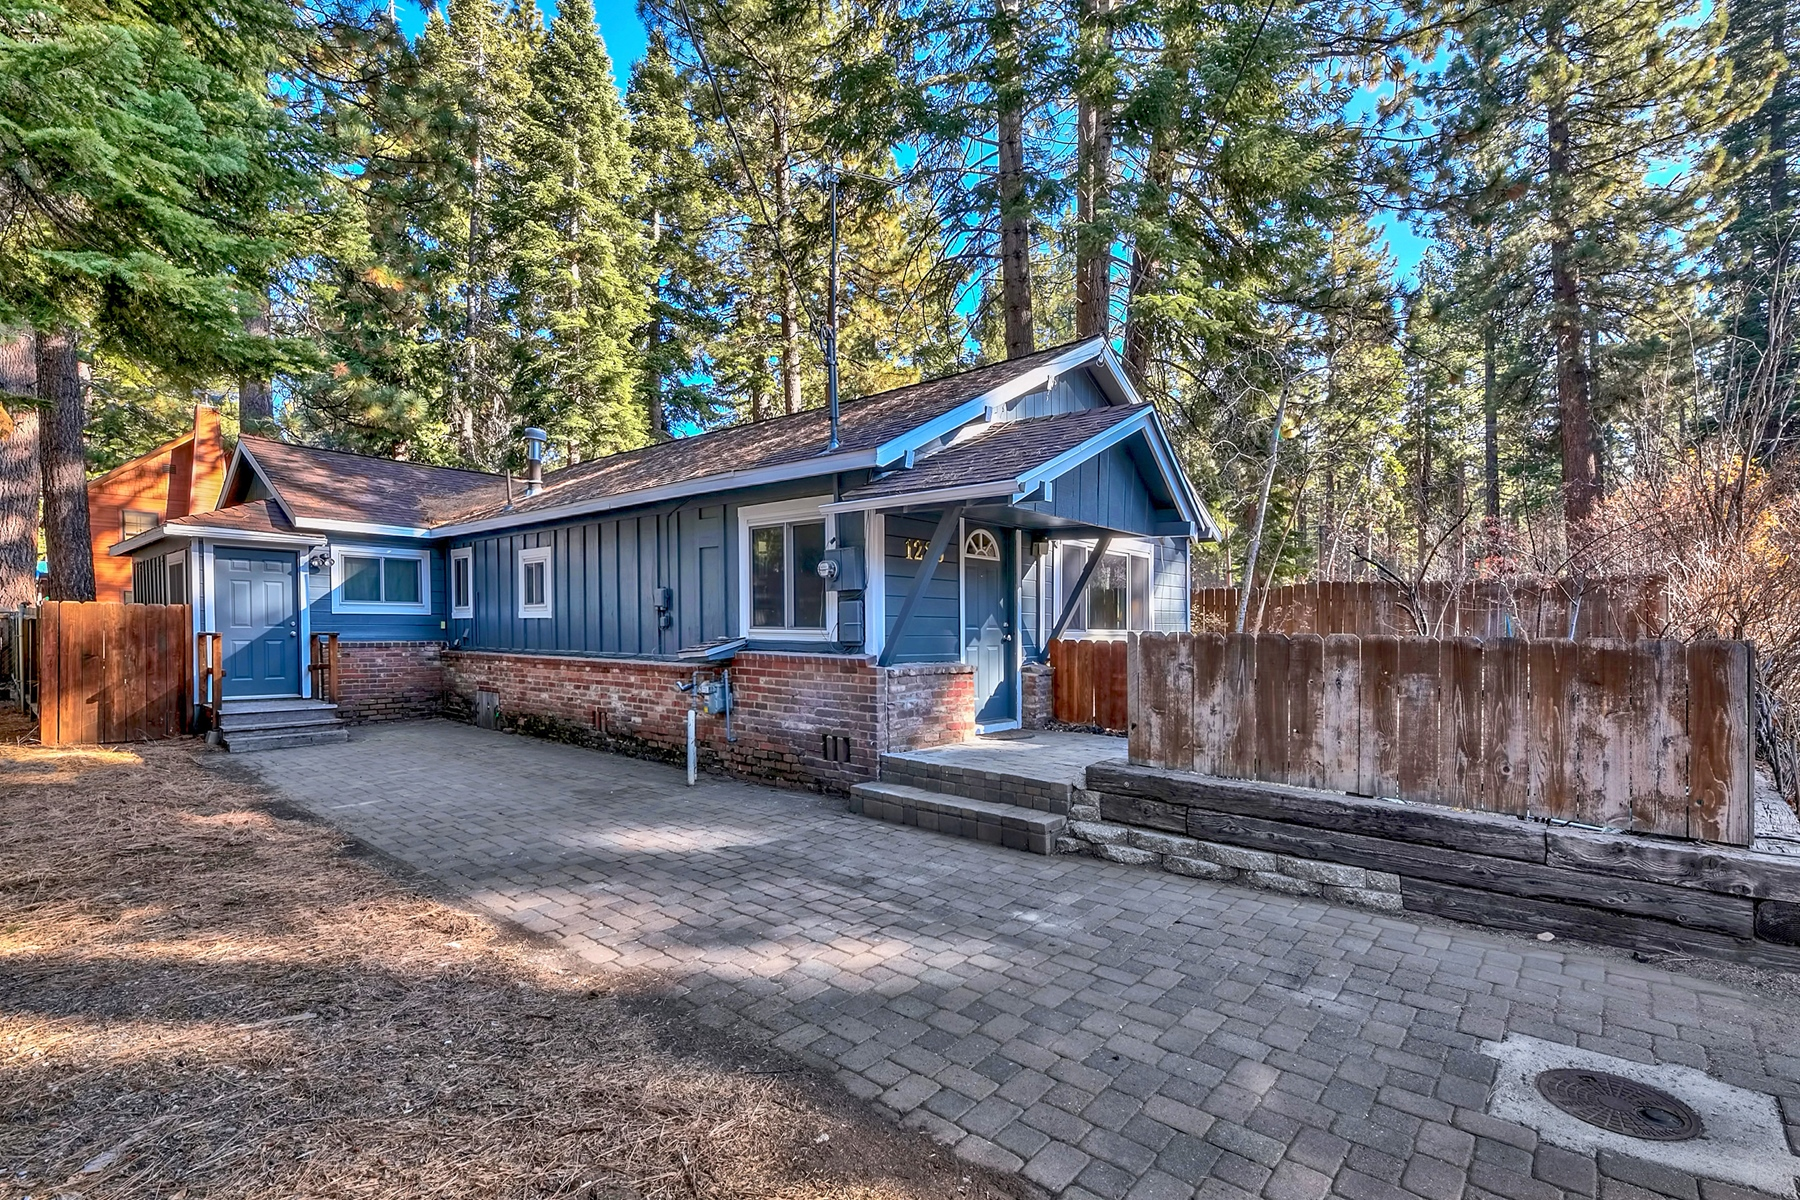 Single Family Home for Active at 1285 Margaret Ave, South Lake Tahoe, Ca 96150 1285 Margaret Avenue South Lake Tahoe, California 96150 United States